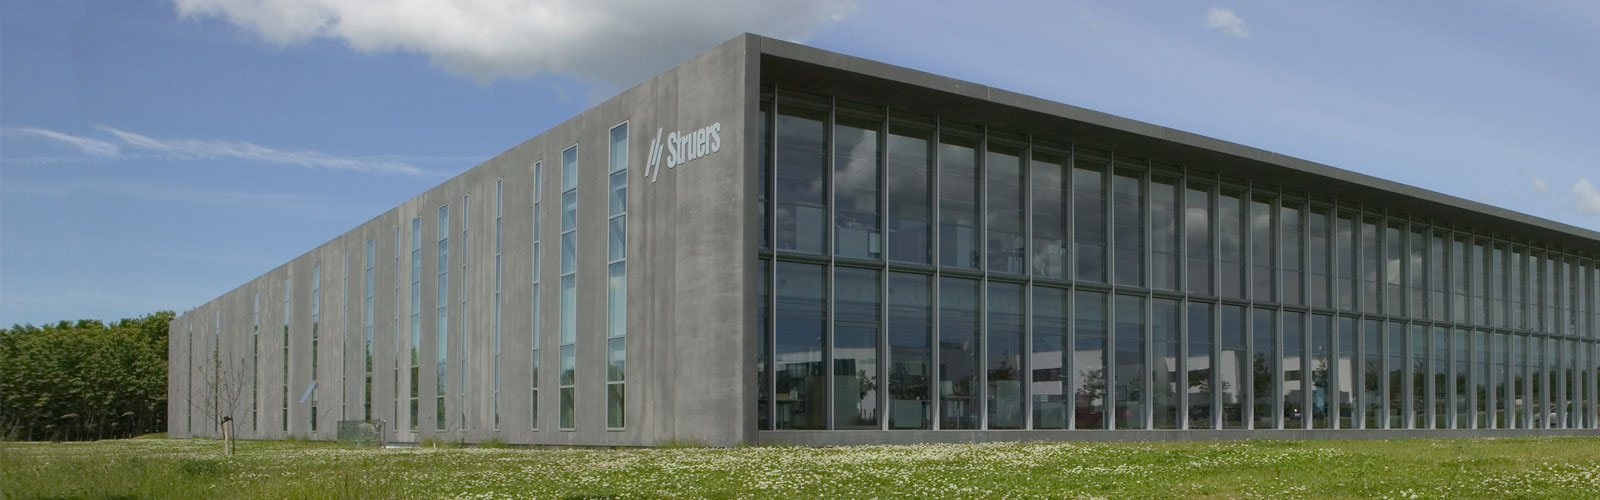 Struers – A World Leader